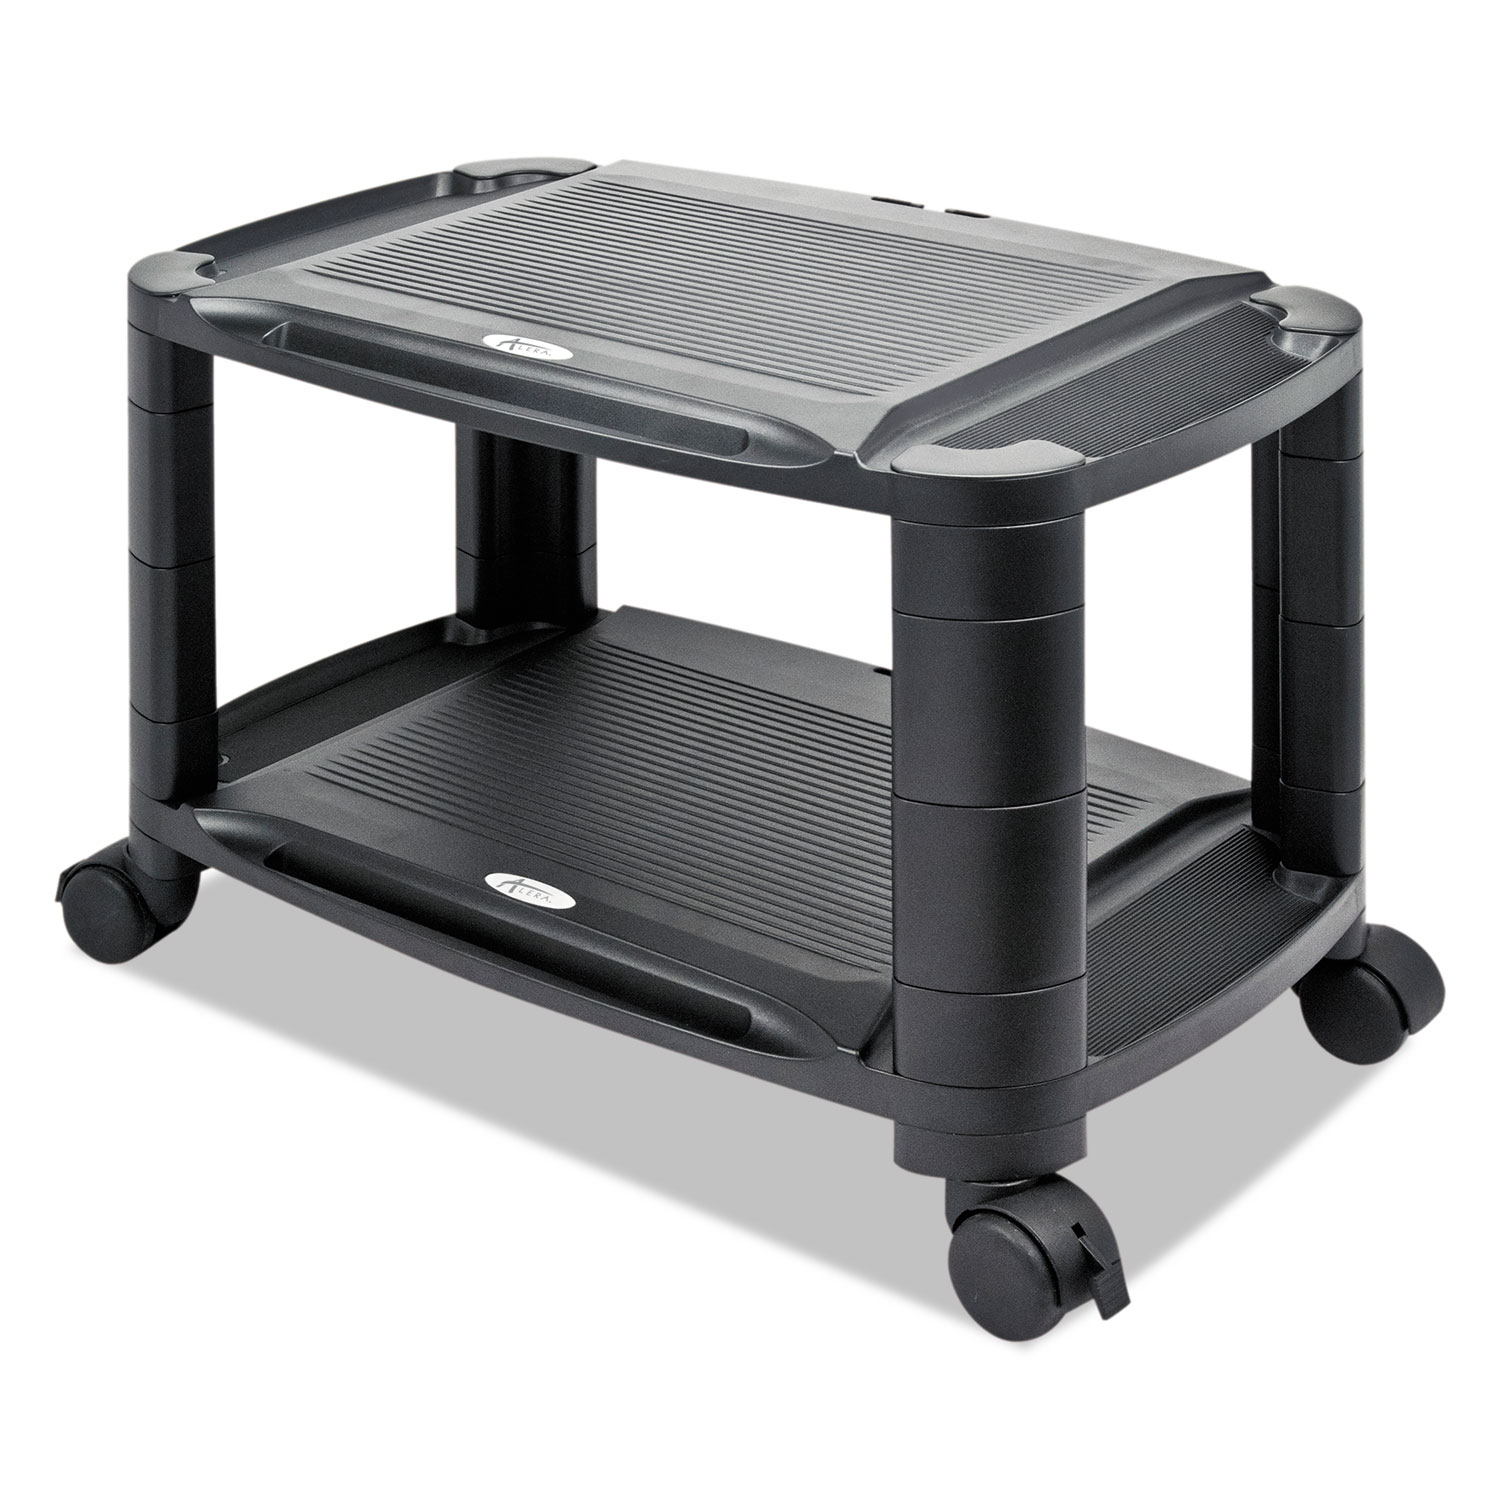 3-in-1 Storage Cart and Stand, 21 5/8w x 13 3/4d x 24 3/4h,Black/Gray